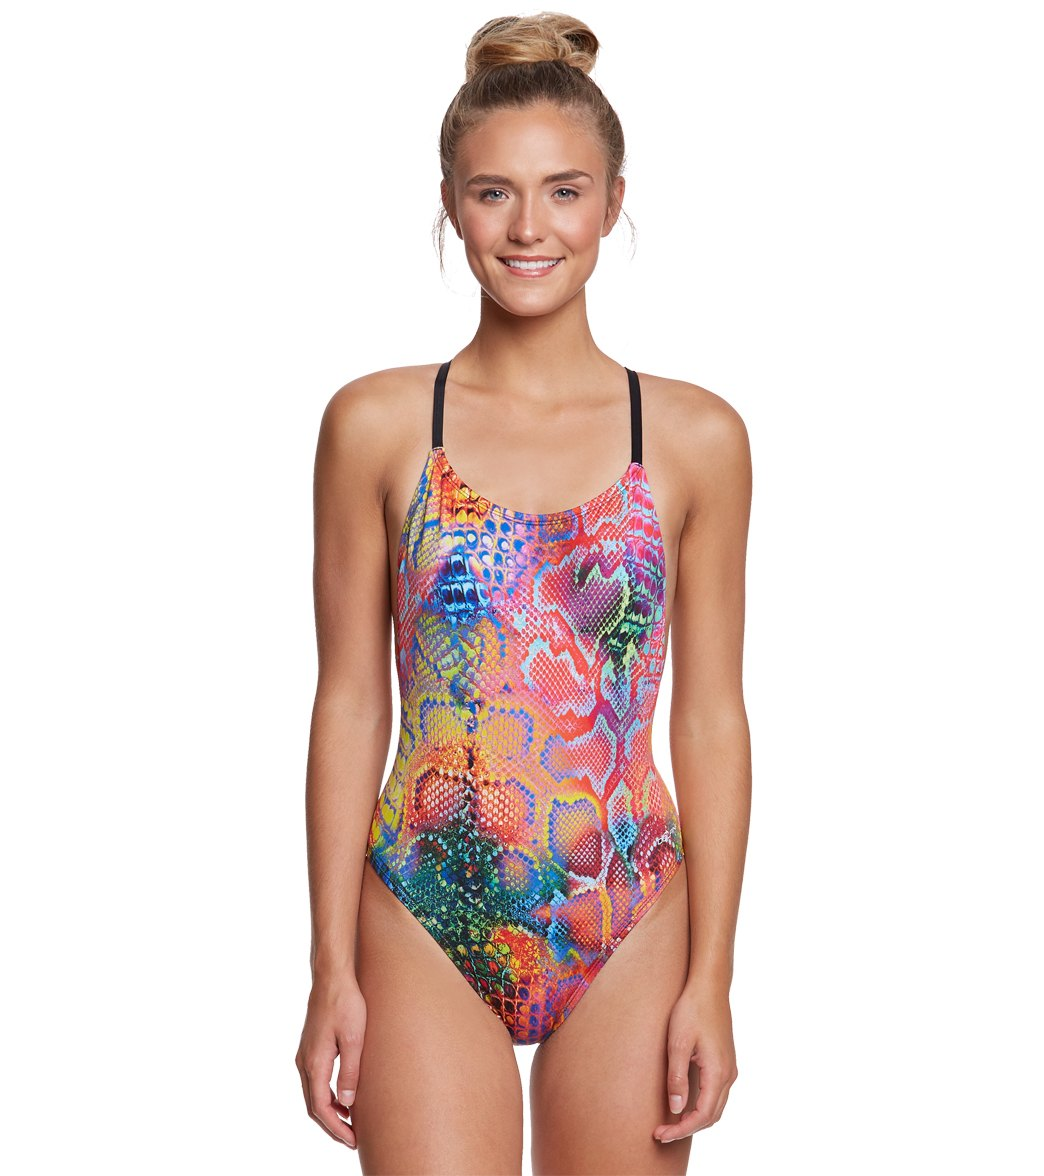 bd582c17853bb Dolfin Bellas Women s Mamba Ultra Low Back One Piece Swimsuit at  SwimOutlet.com - Free Shipping